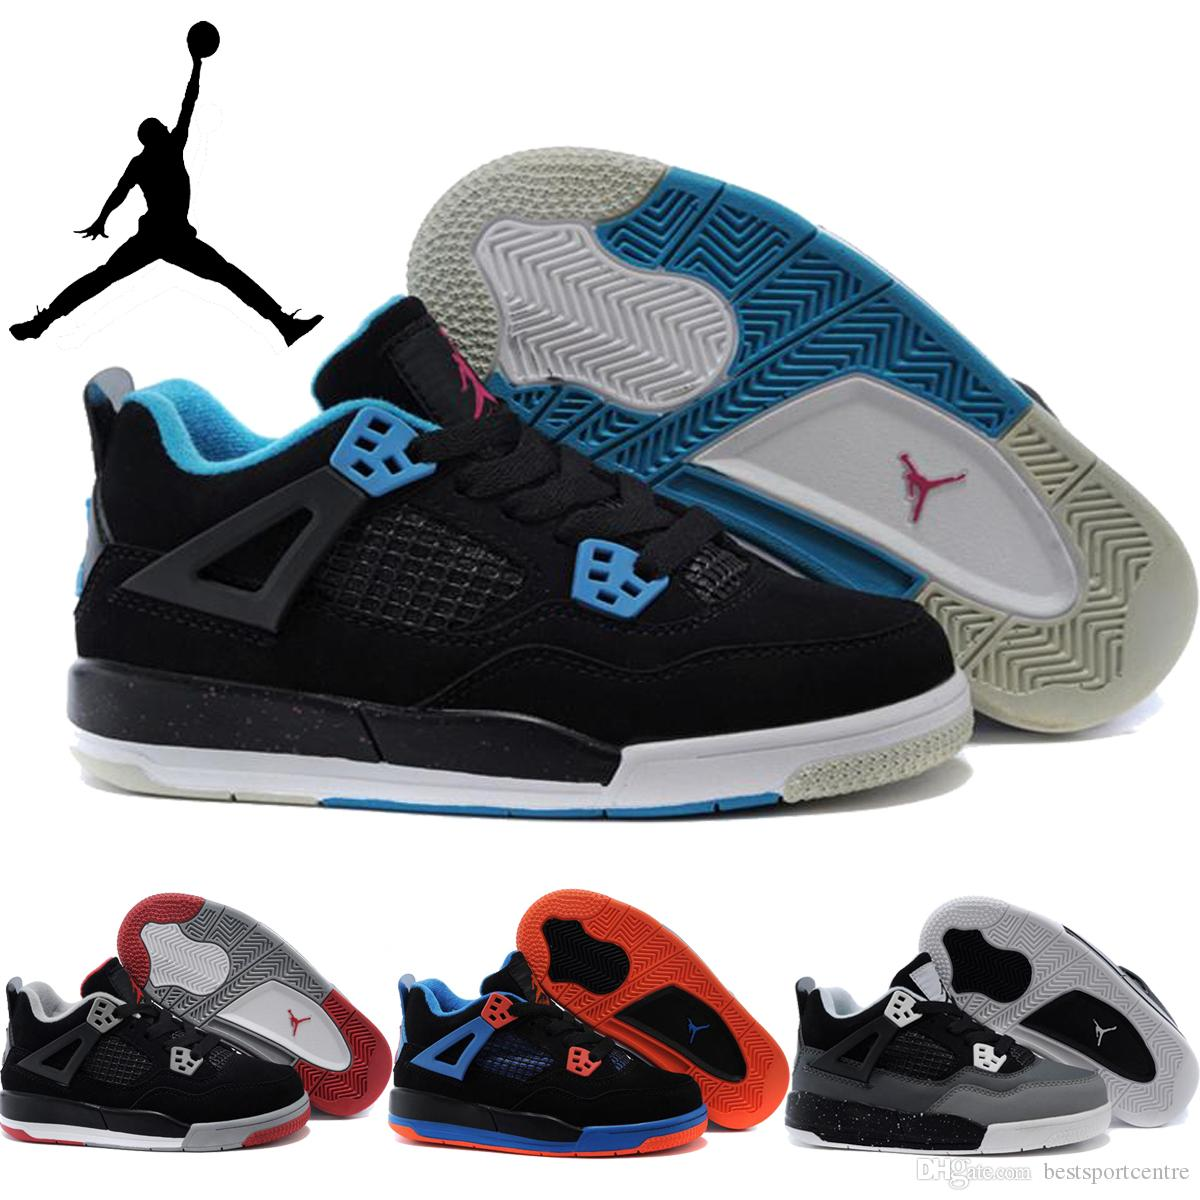 Nike Air Jordan Retro Children Shoes Boys Girls